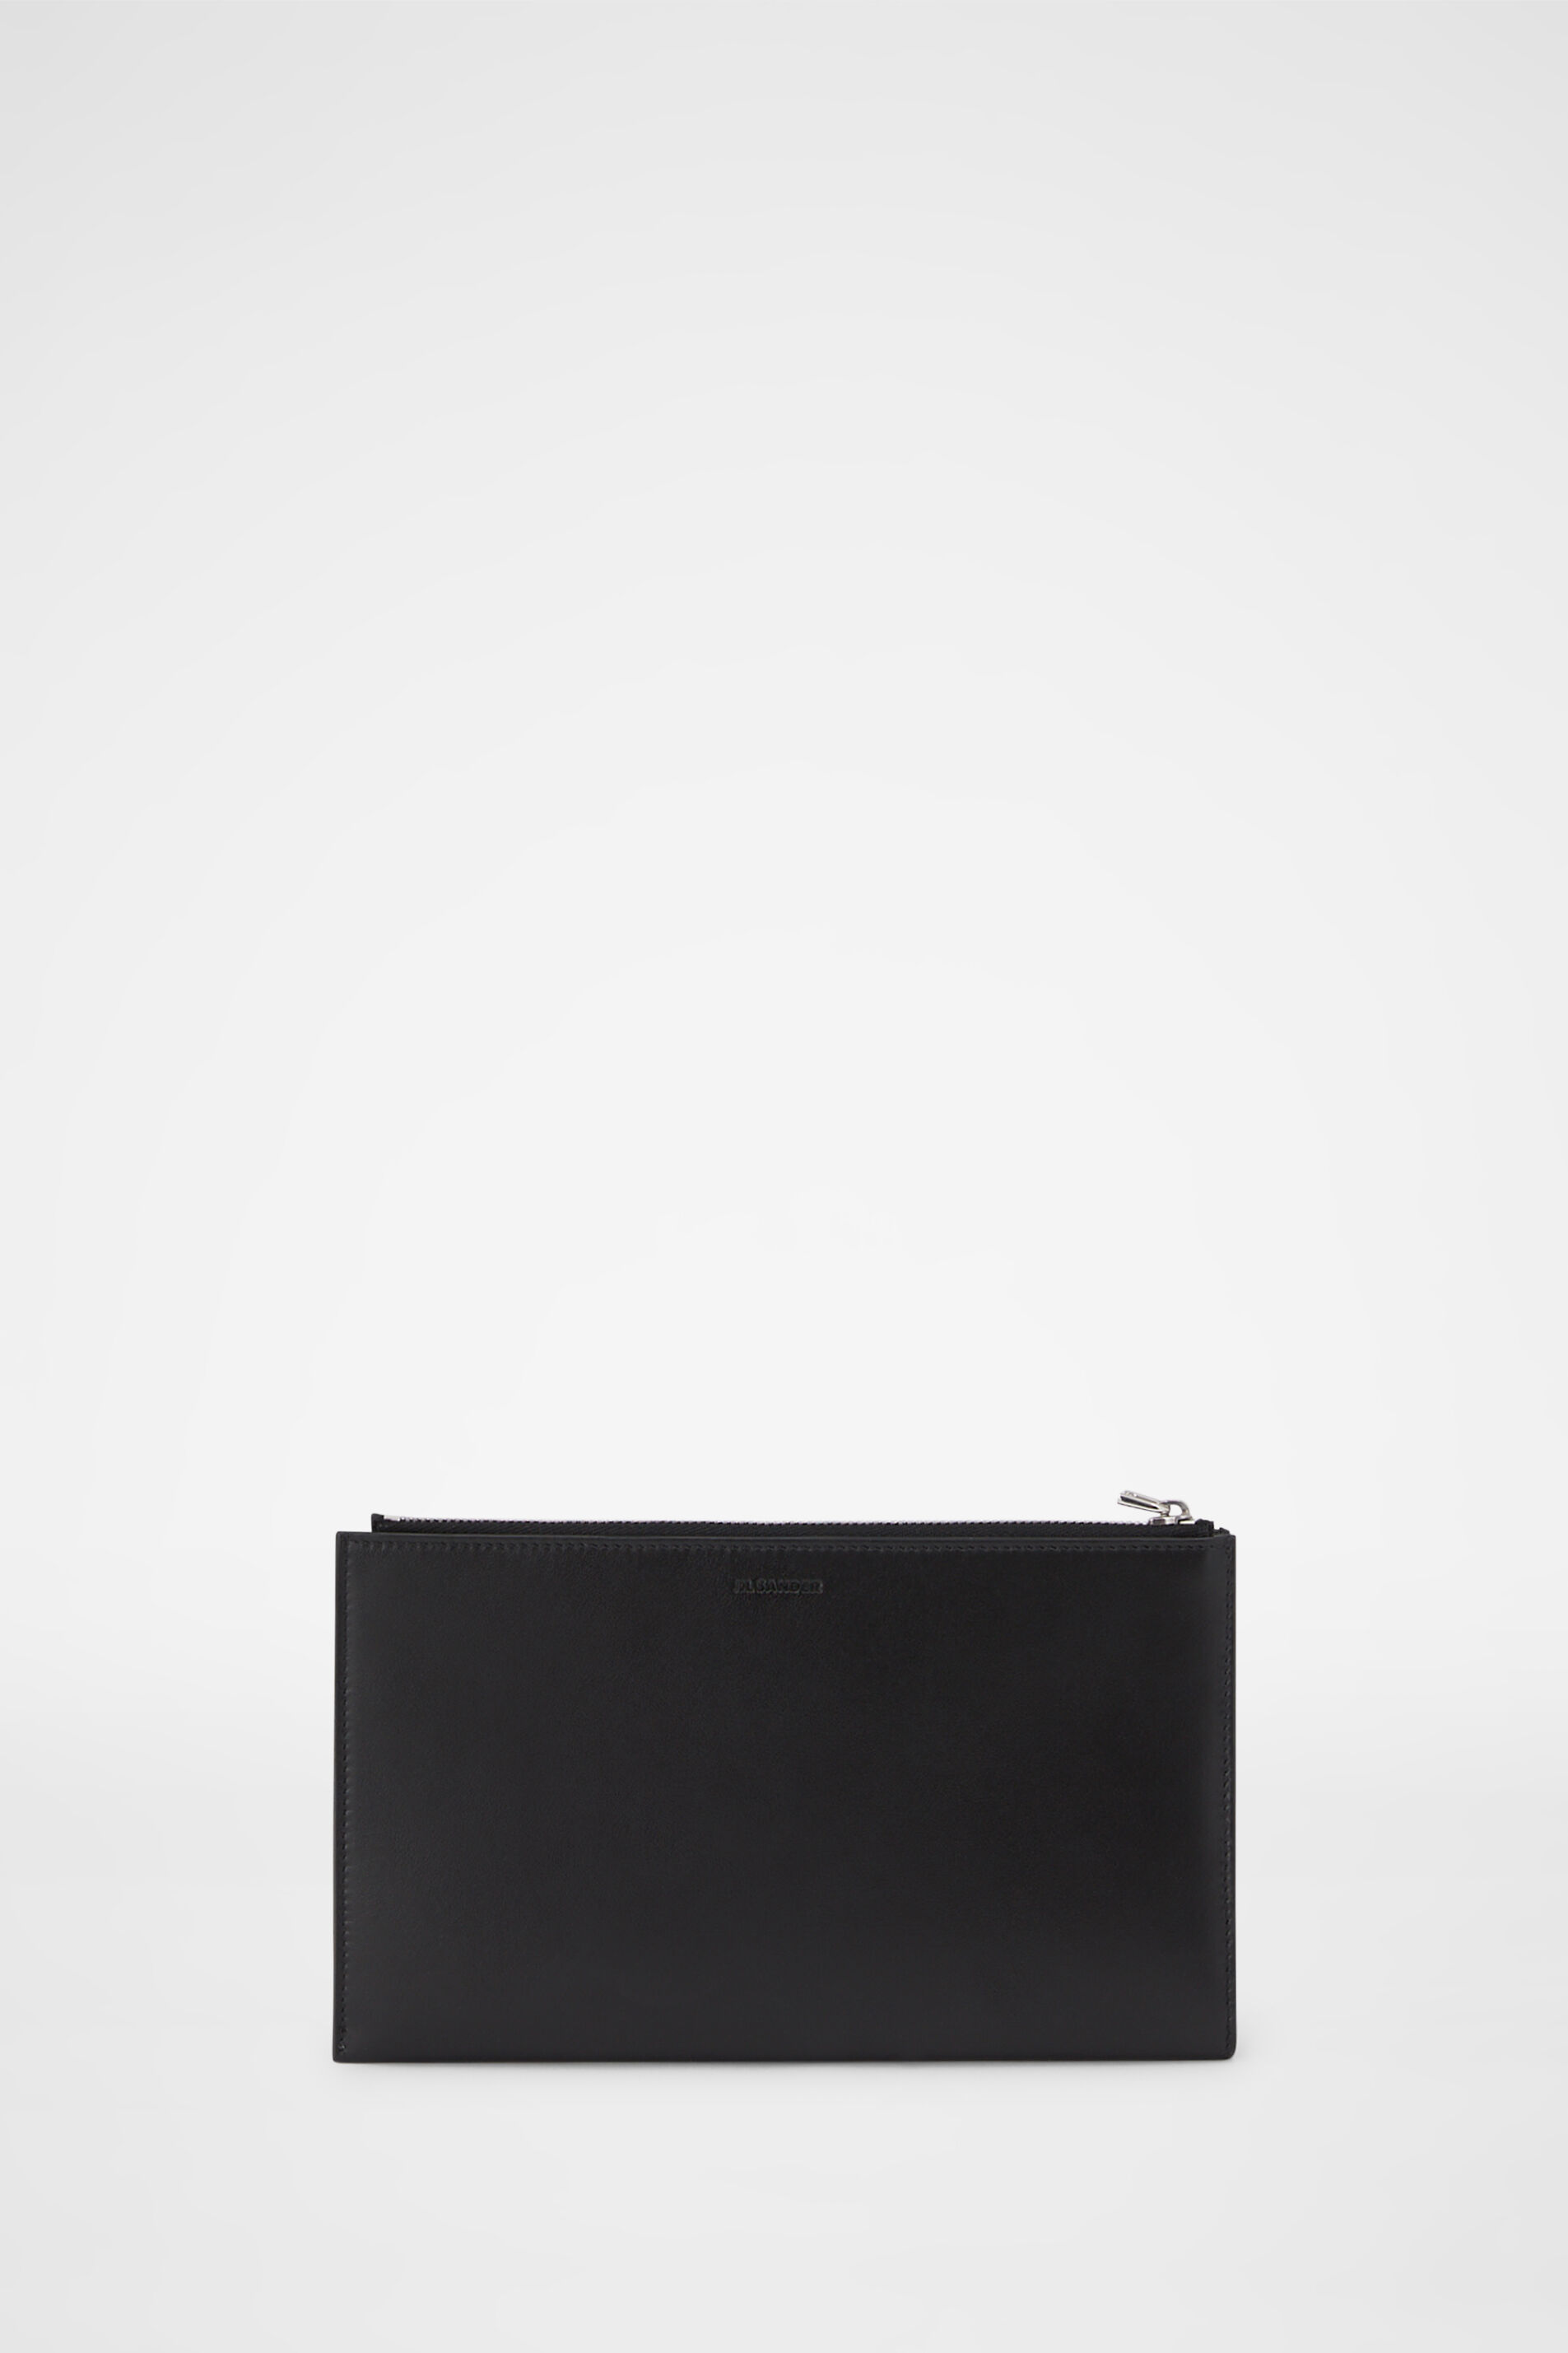 Zip Document Holder, black, large